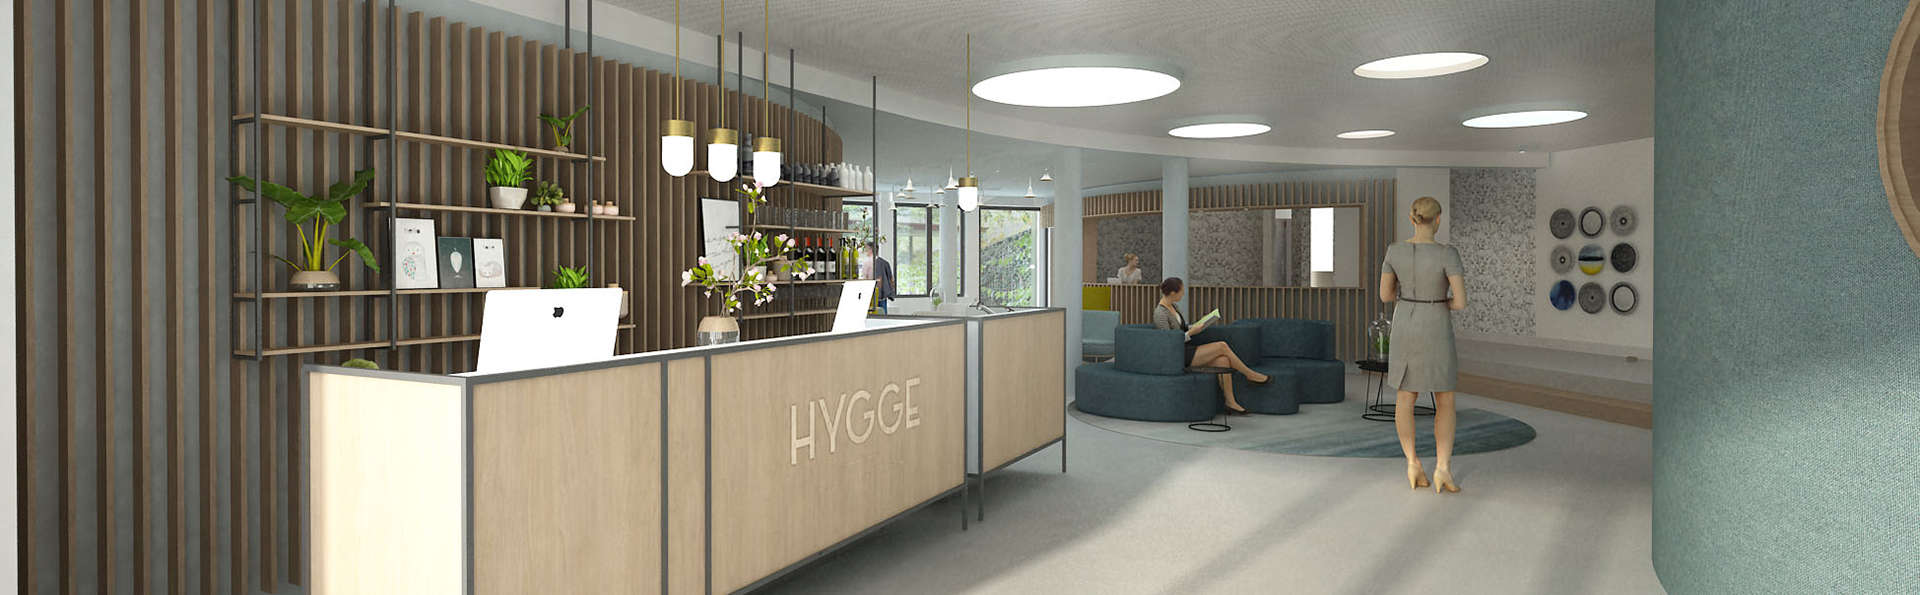 Hygge Hotel - Edit_Reception.jpg